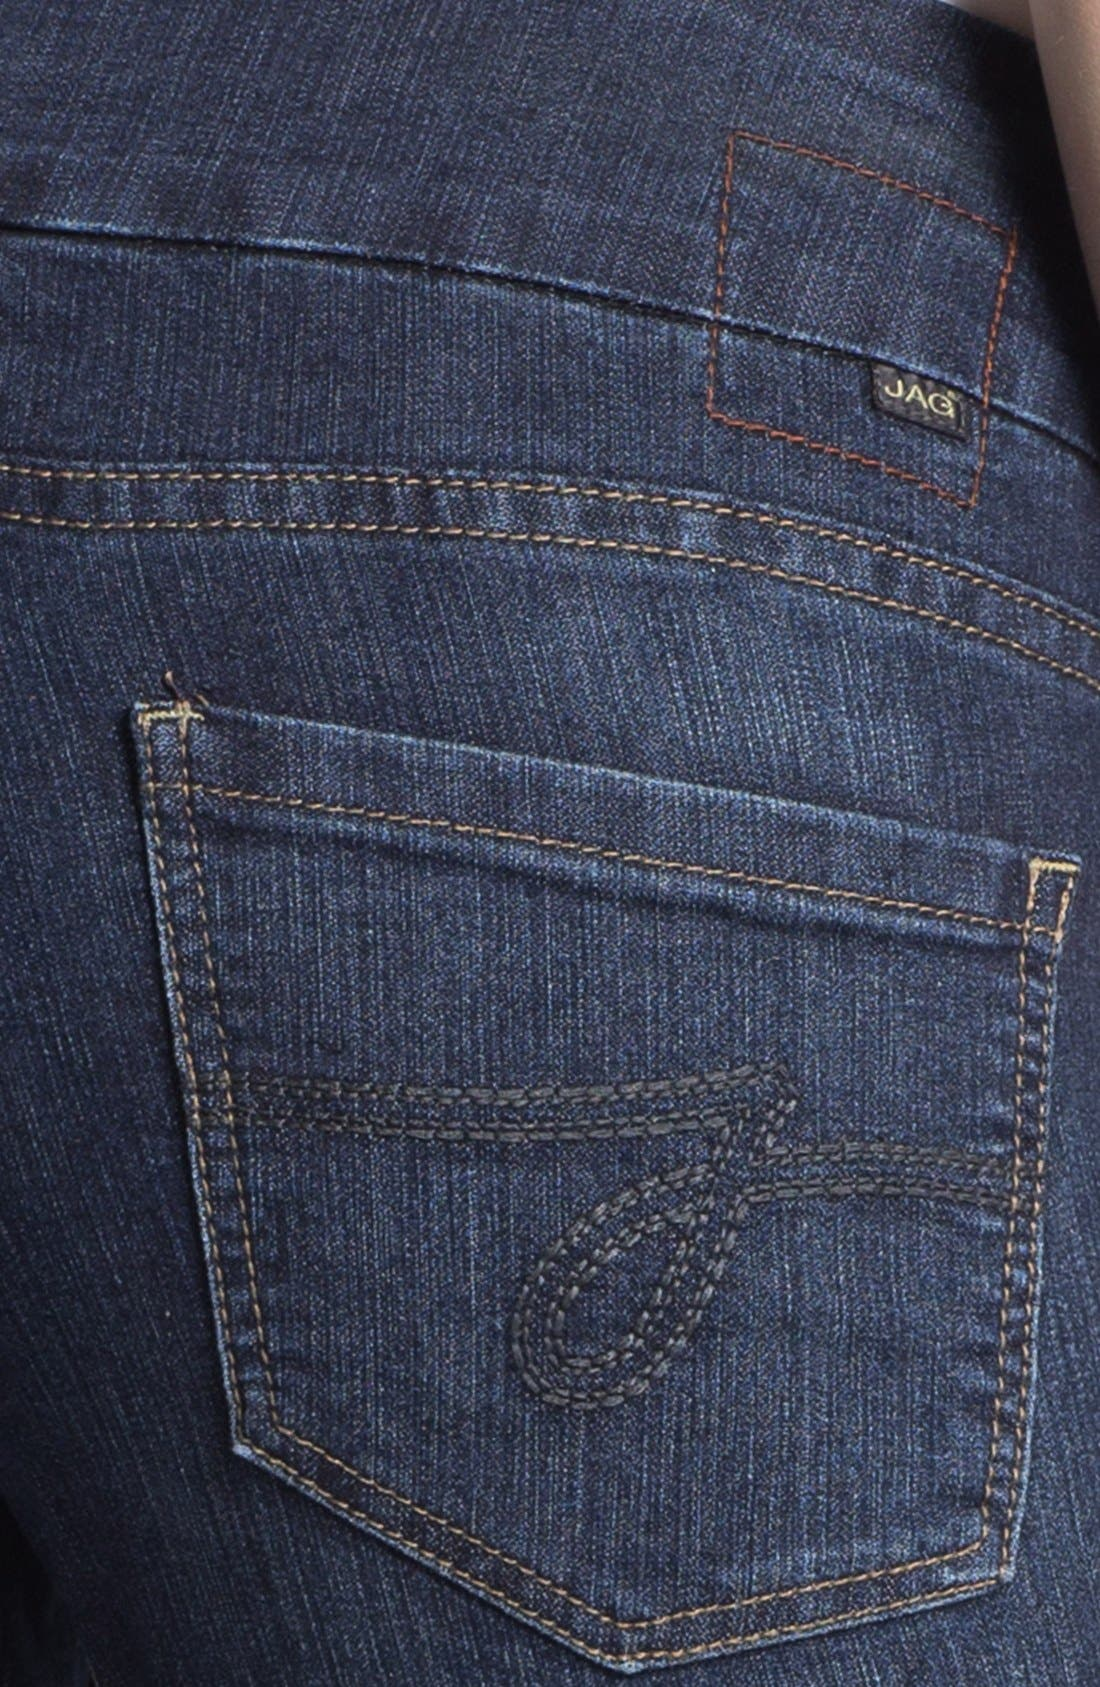 Alternate Image 3  - Jag Jeans 'Fenmore' Crop Stretch Jeans